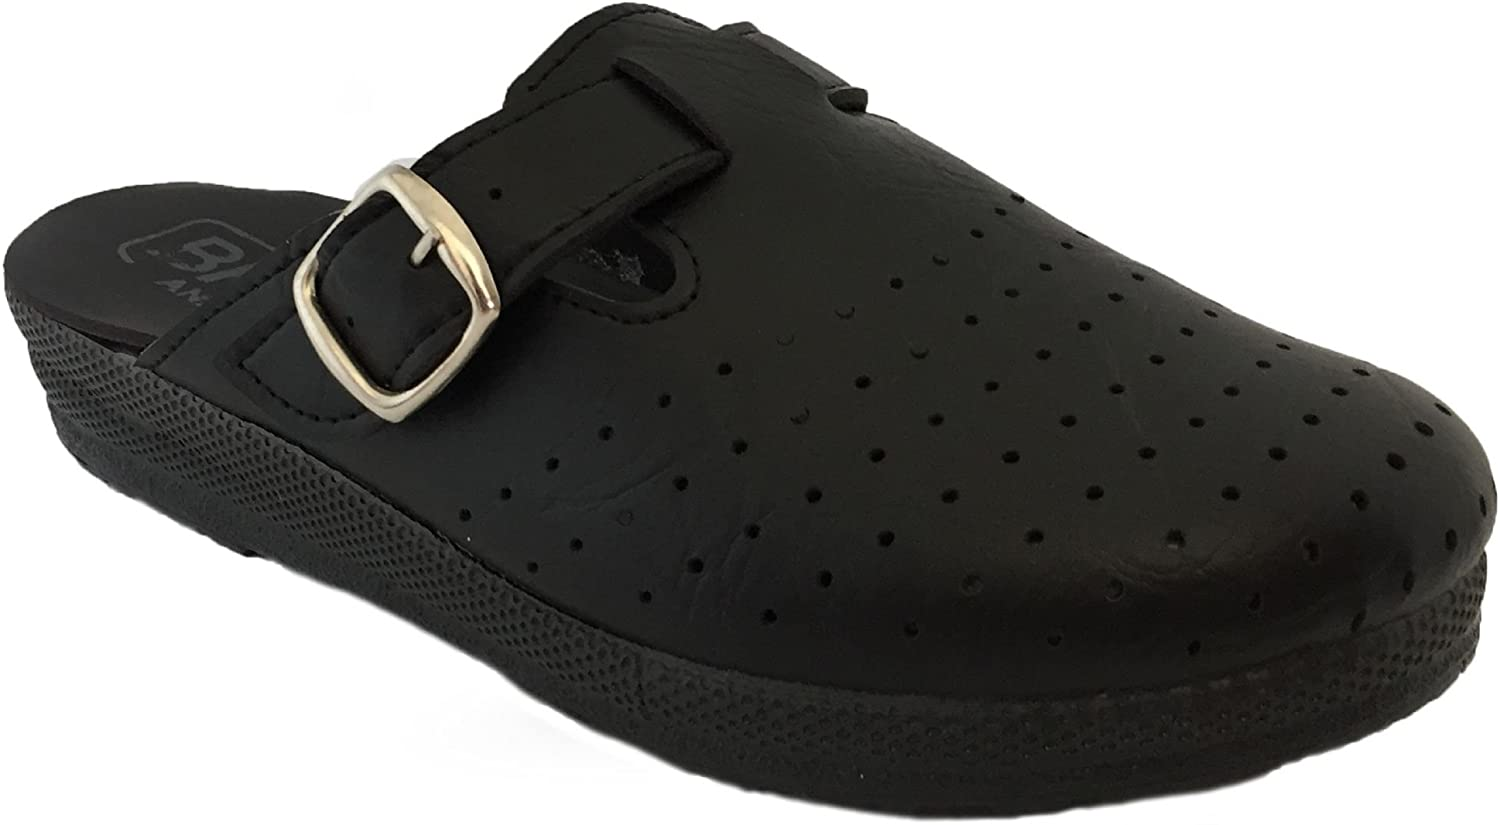 Womens Mule Clogs Slippers Shoes, Black